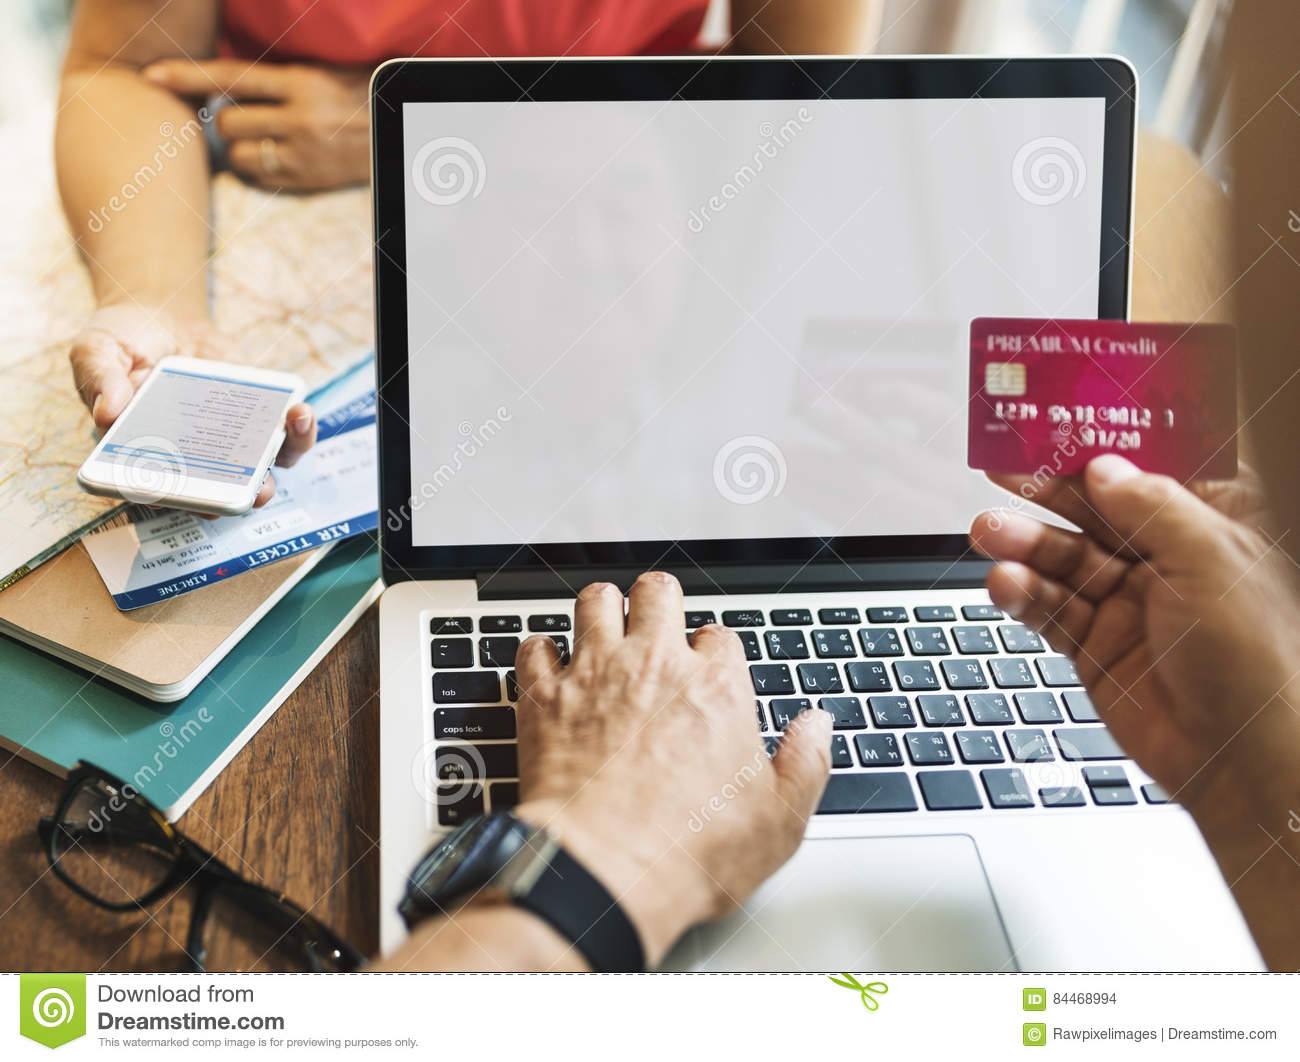 Store credit cards and co-branded credit cards are different. A store credit card works at no more than a few retailers, but usually just one. A co-branded credit card is affiliated with a retailer or other company but can be used anywhere Visa, Mastercard, Discover or American Express is accepted.